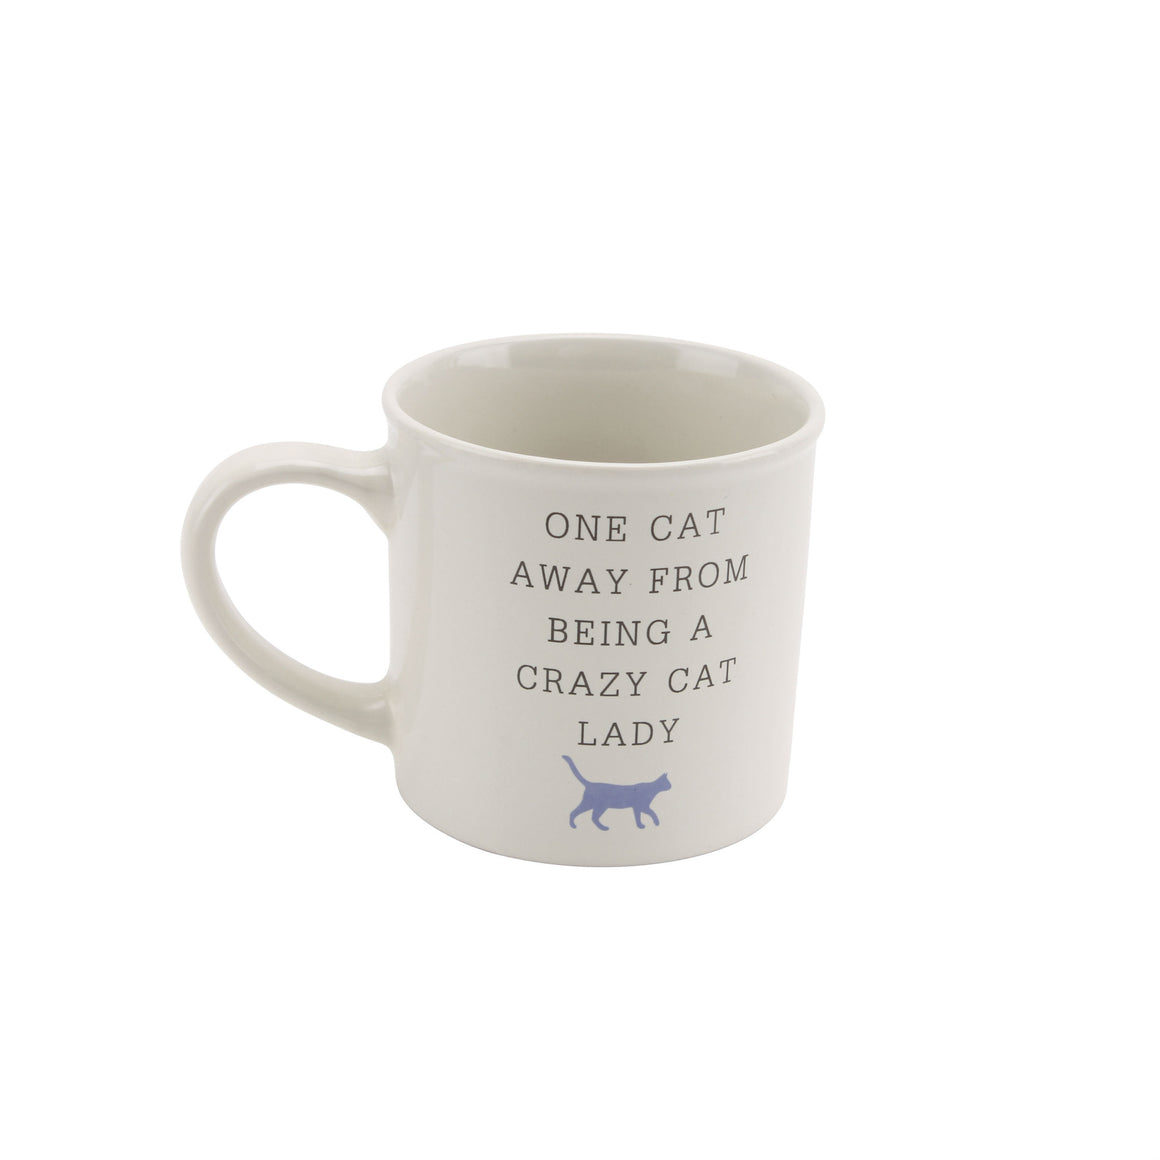 'One Cat Away From Being A Crazy Cat Lady' Mug - The Love Trees